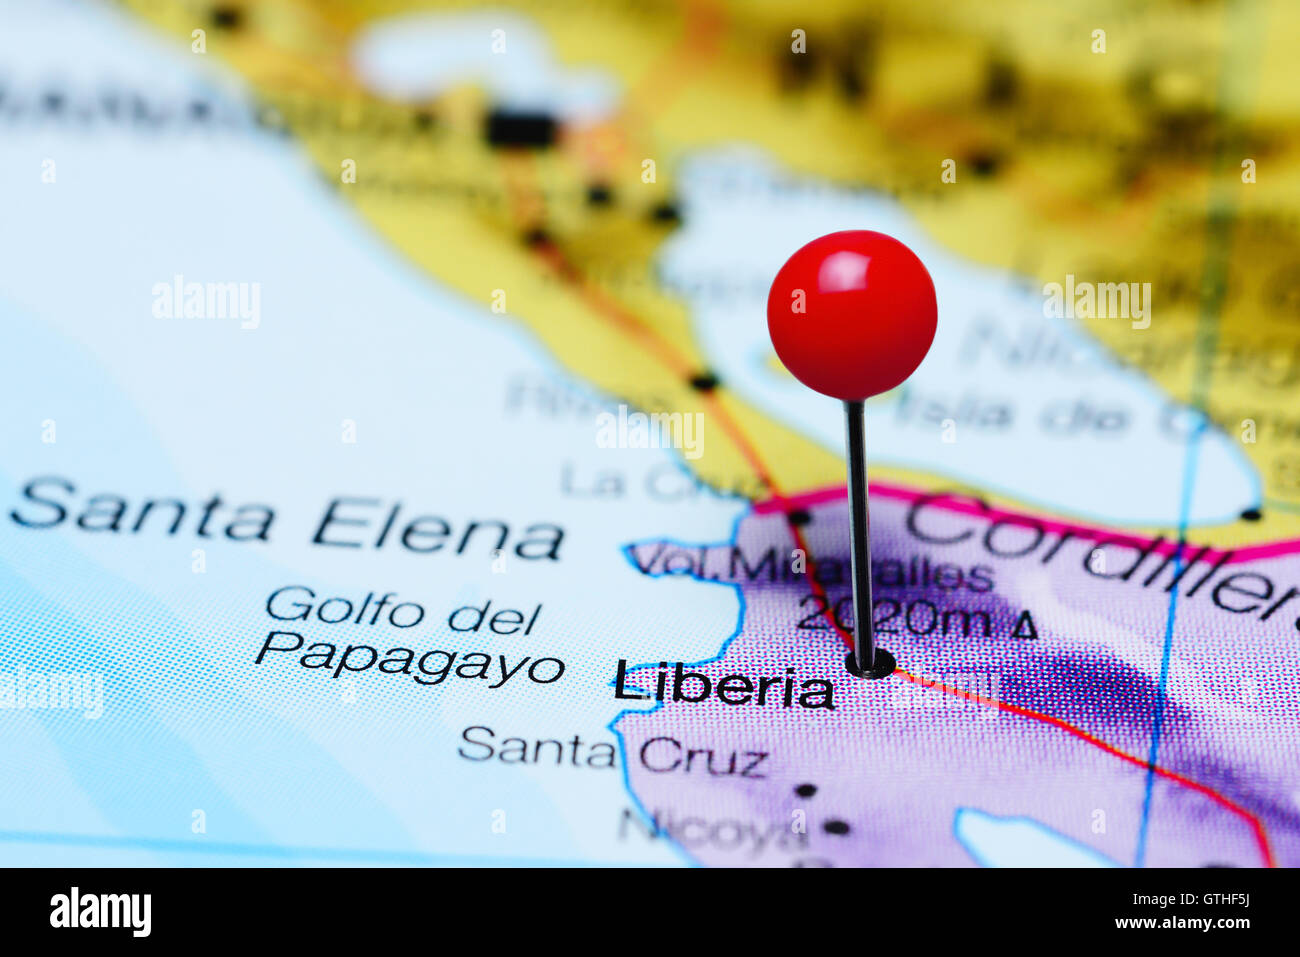 Liberia pinned on a map of Costa Rica - Stock Image